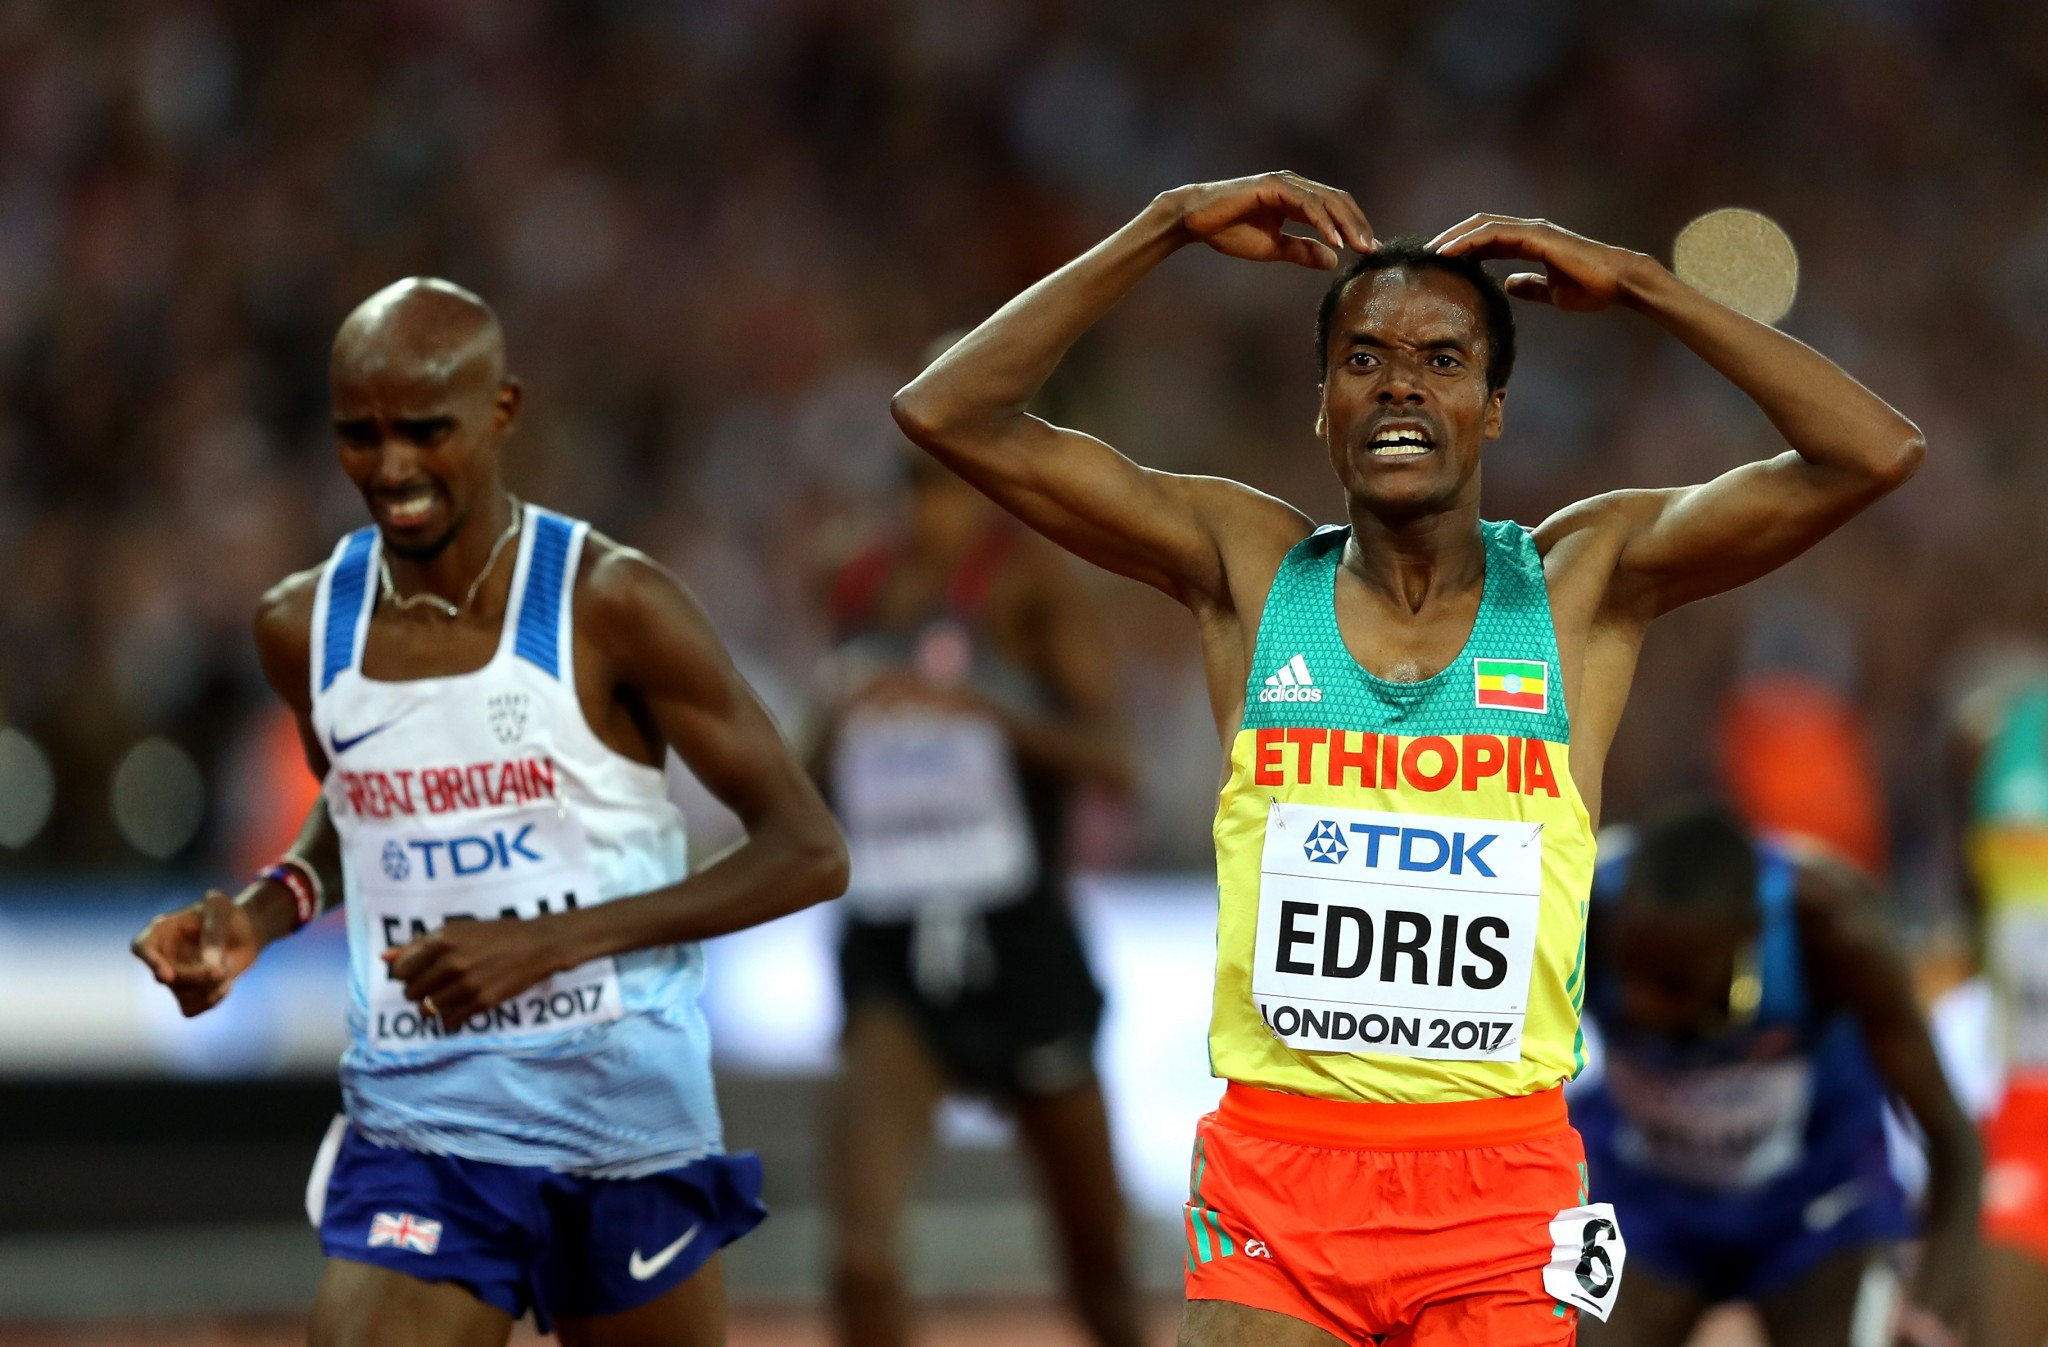 Muktar Edris spoiled Sir Mo's final event by winning the 5,000m gold medal ©Getty Images